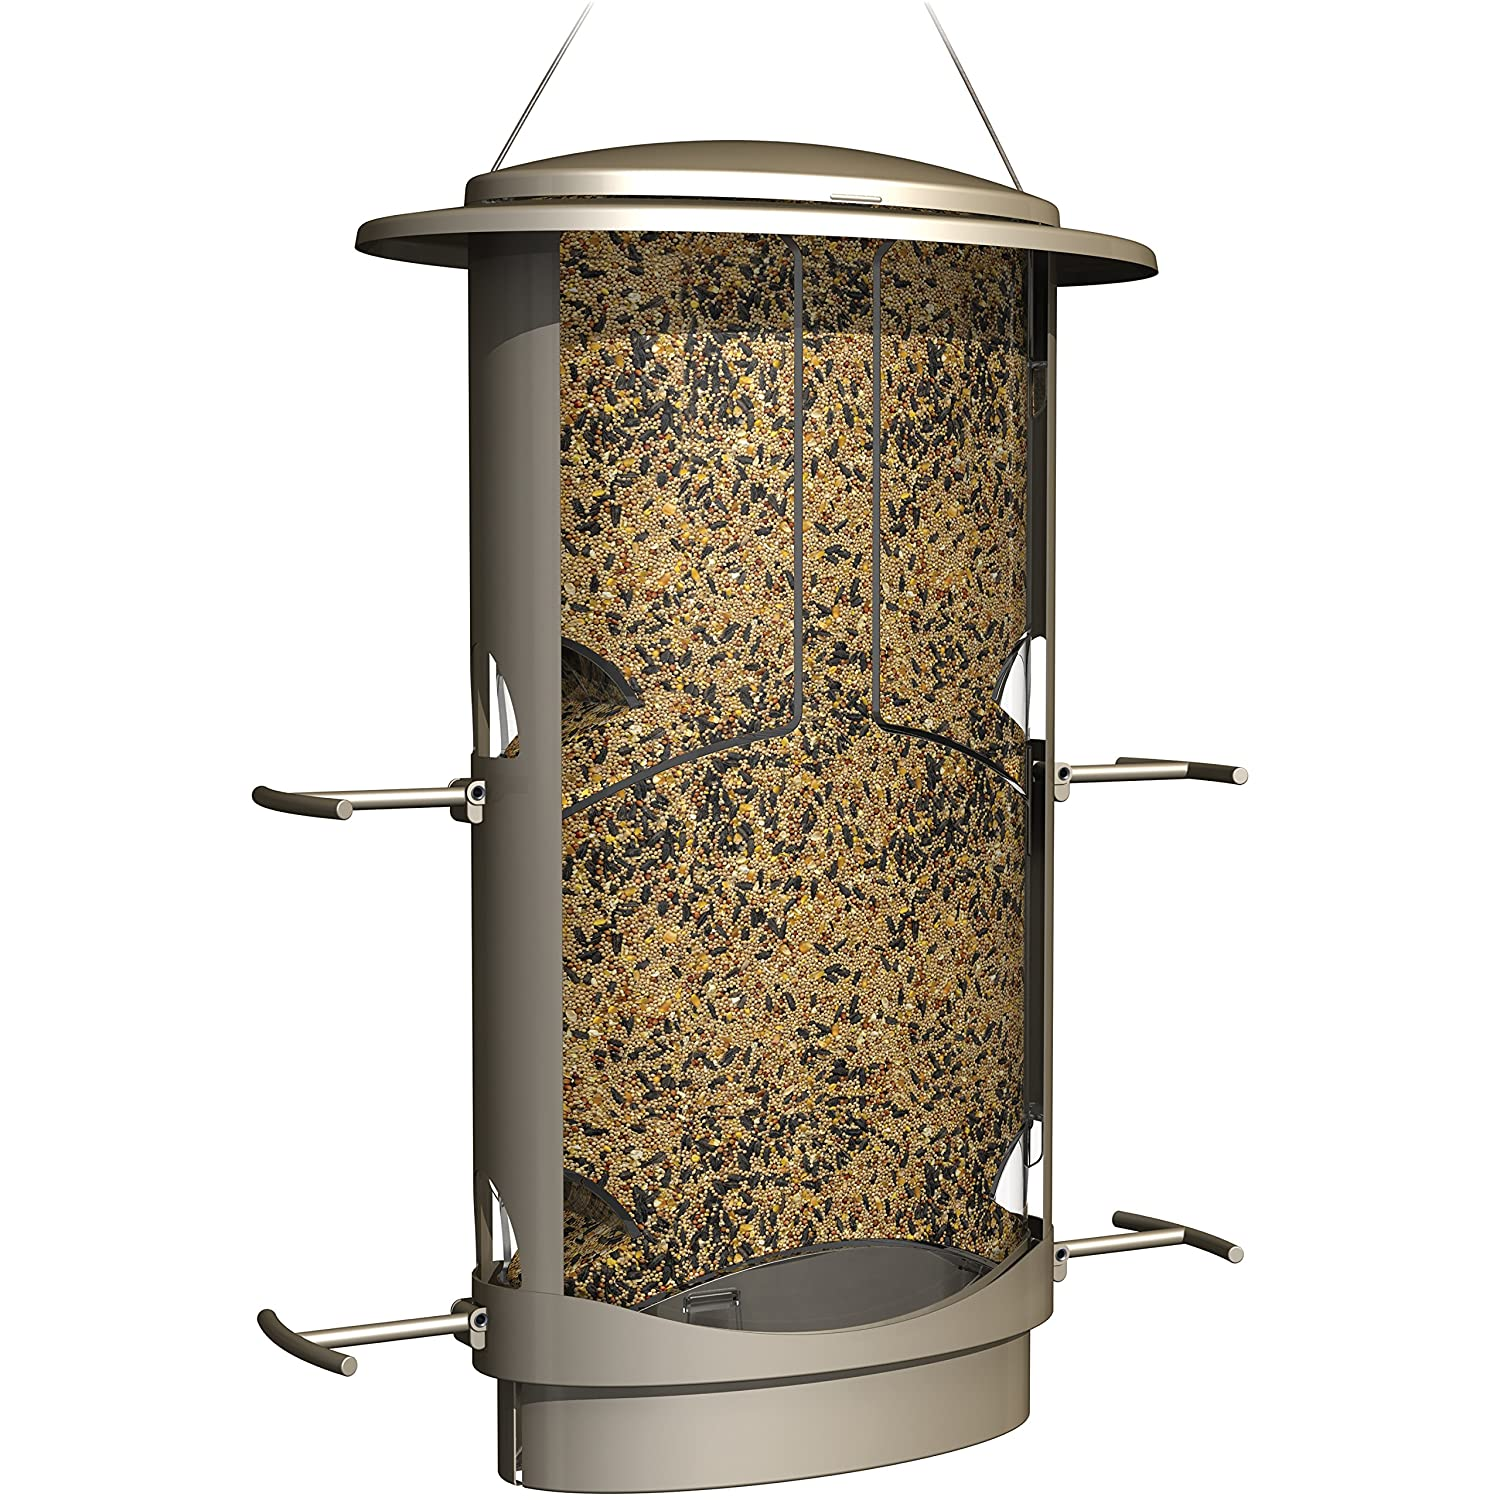 plus patio feeding amazon buster ring with ca and feeder ports bird wild brome proof dp capacity squirrel cardinal perch seed